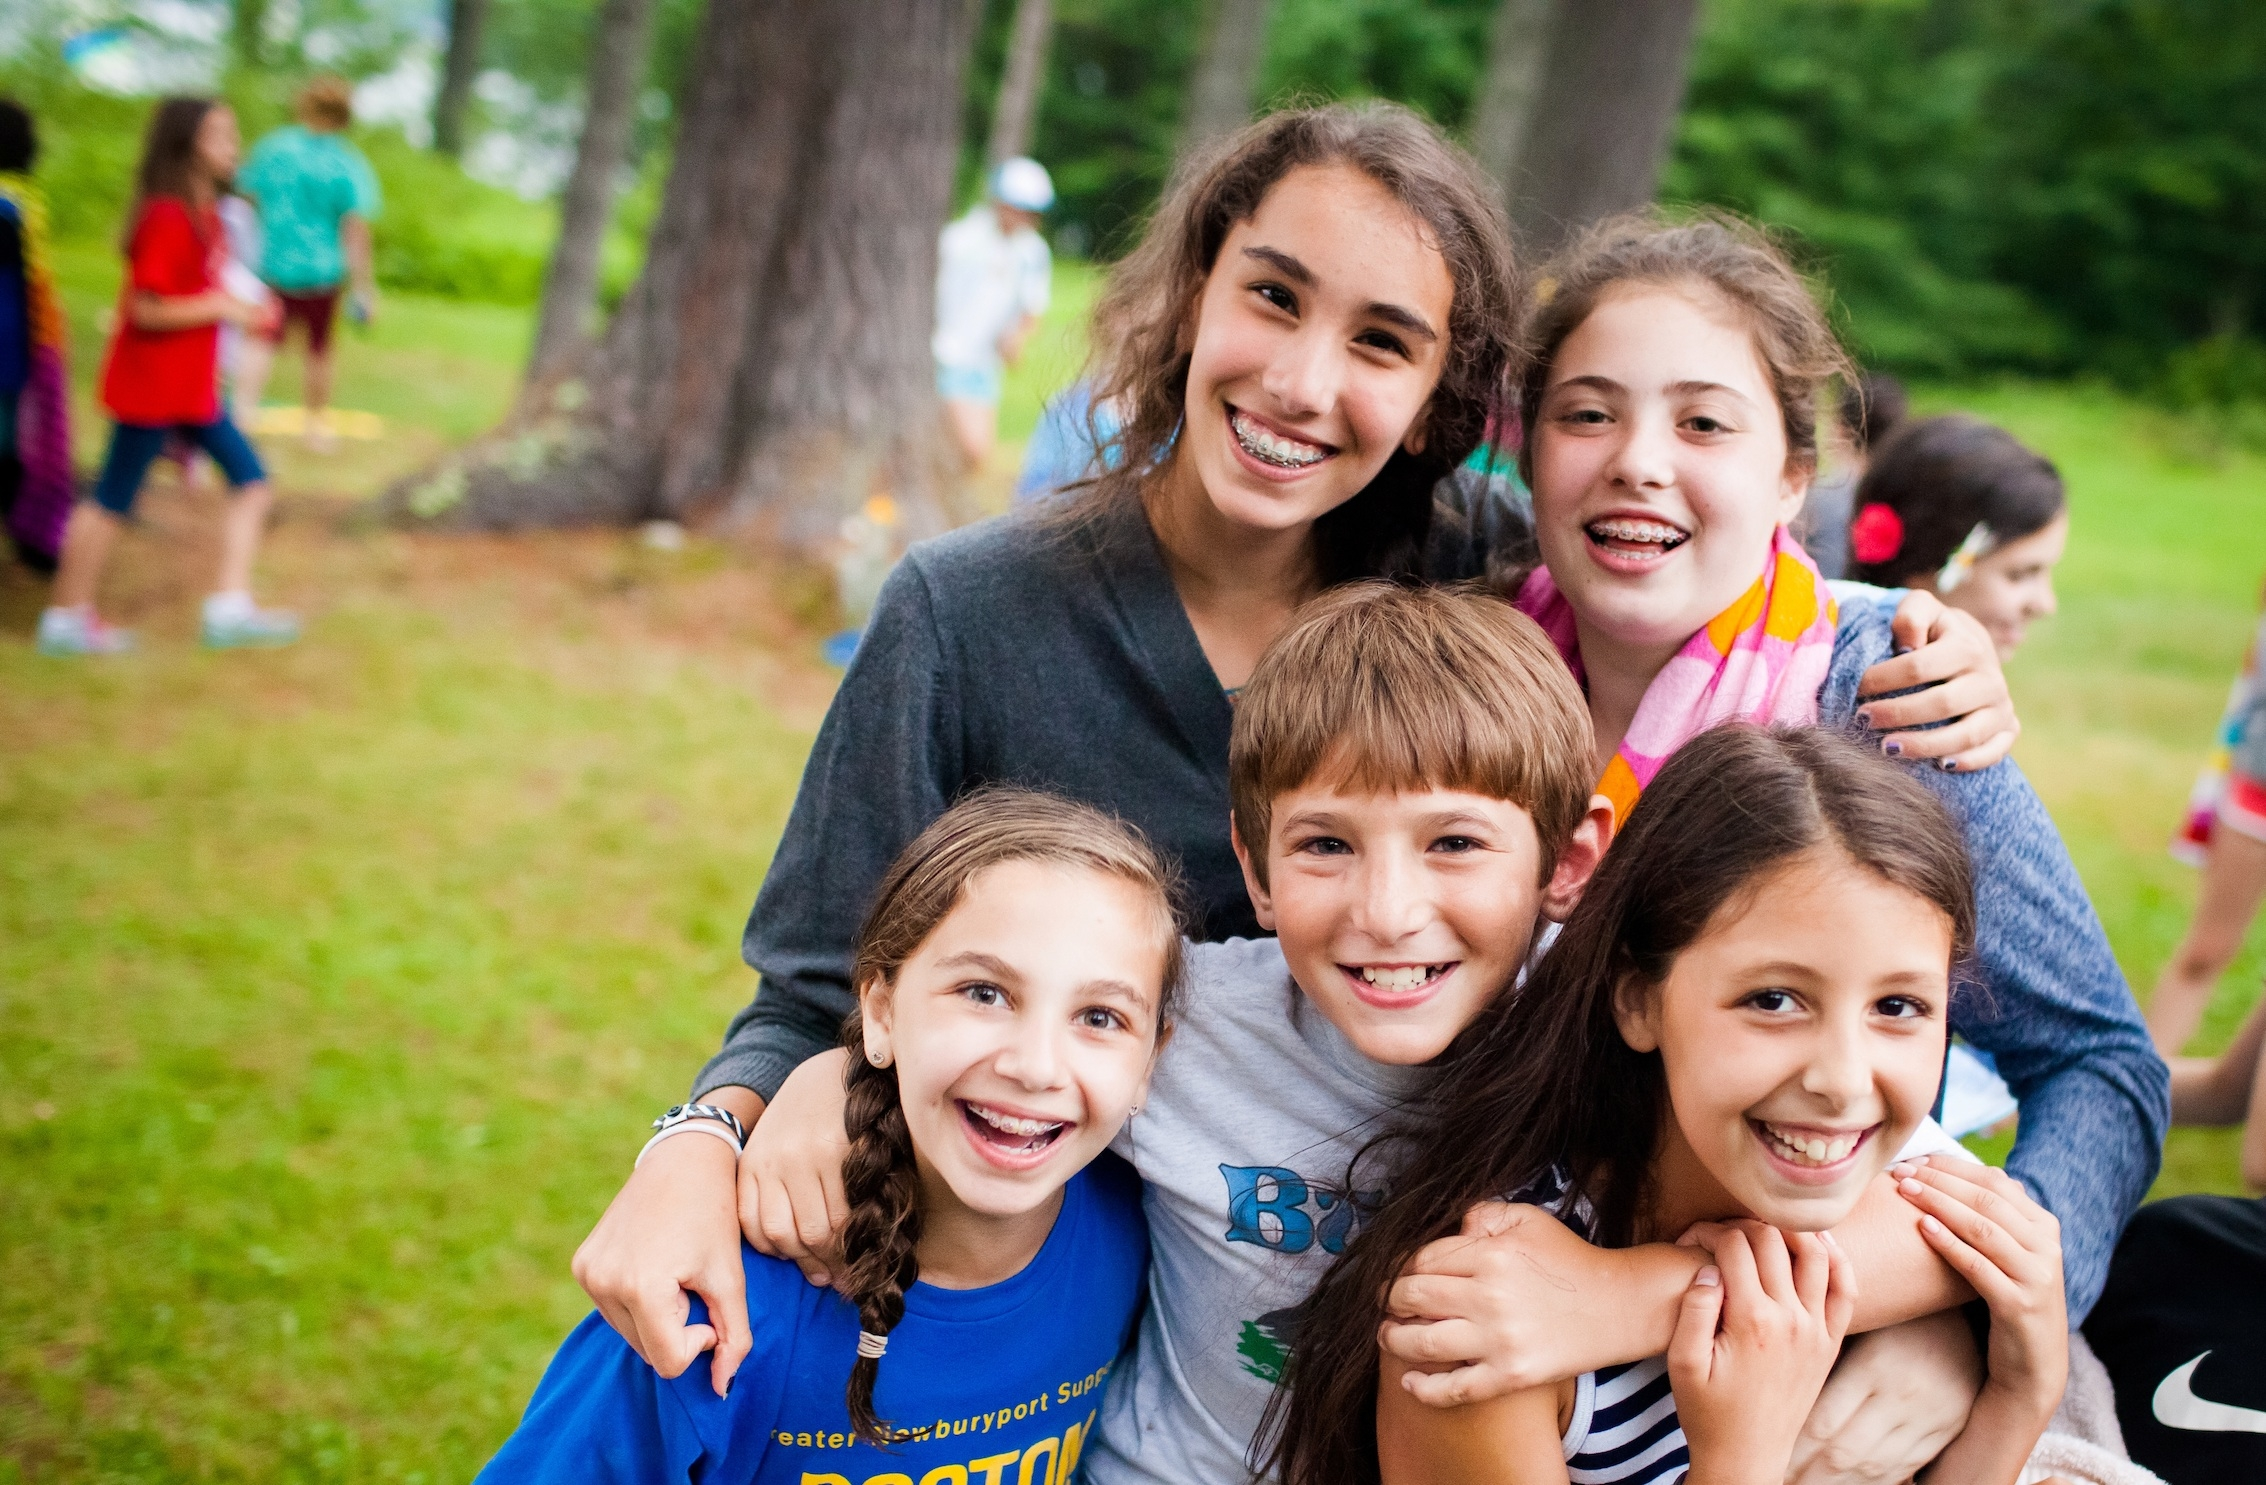 New Bunkconnect Program Offering Discounts For First Time Campers Jewish Telegraphic Agency